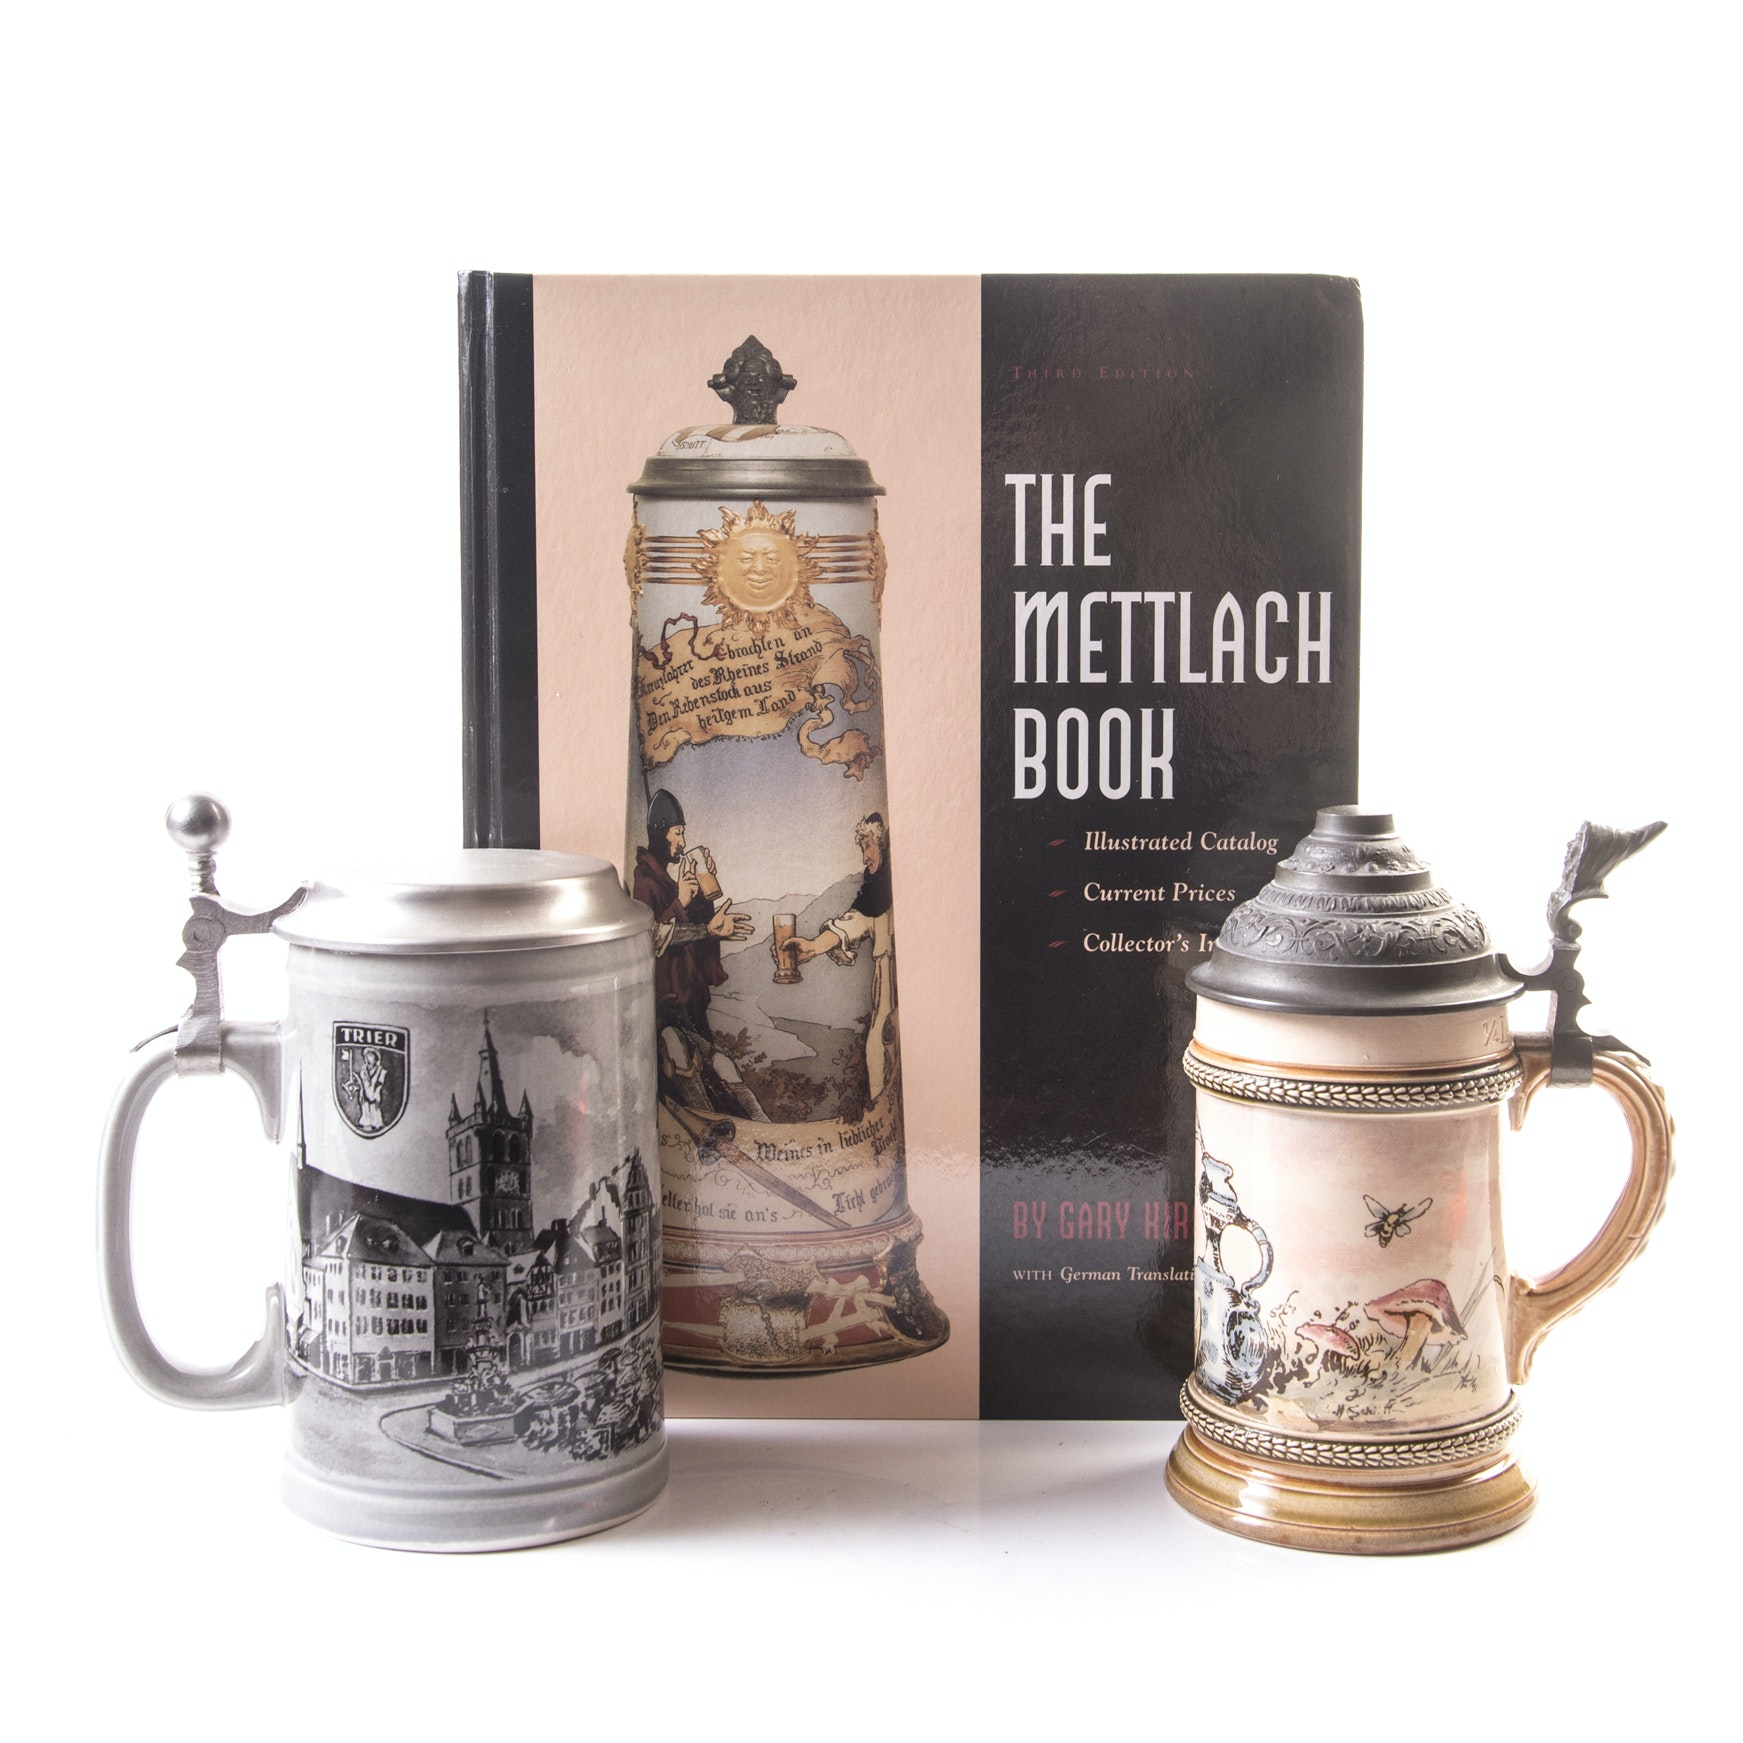 Villeroy & Boch and Mettlach Beer Steins with Collector's Book